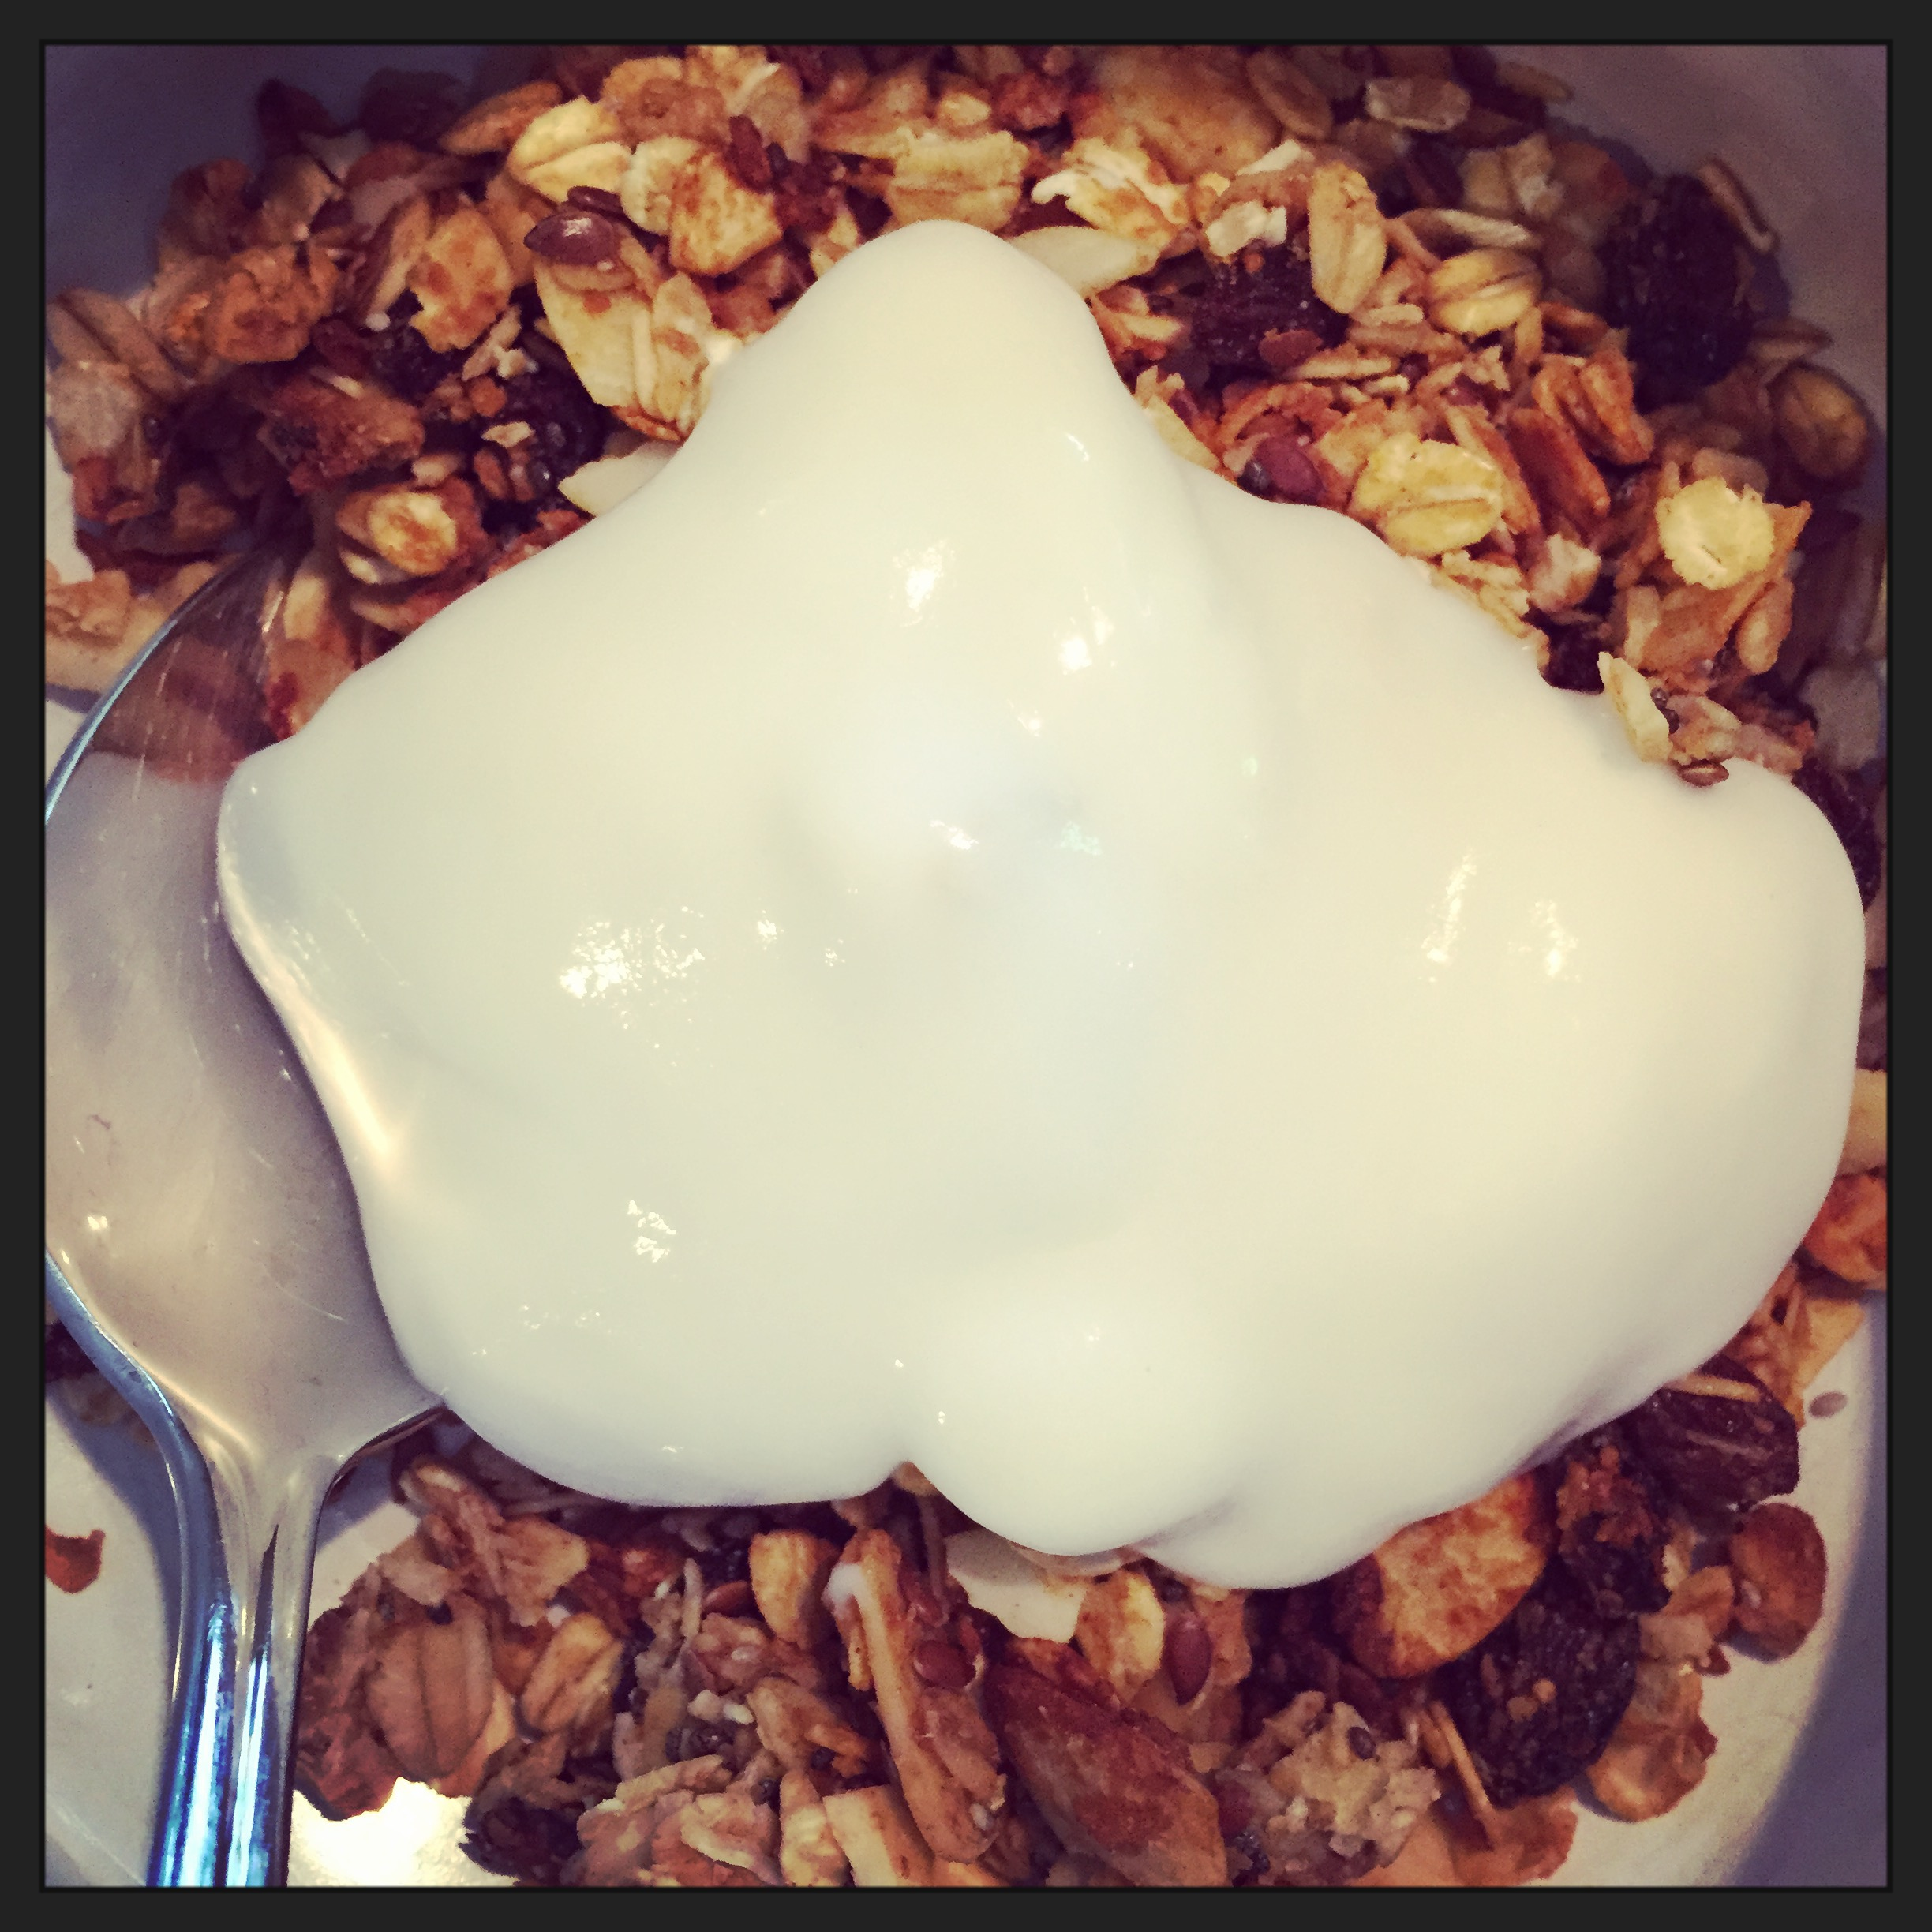 Do you remember the Homemade Granola recipe?